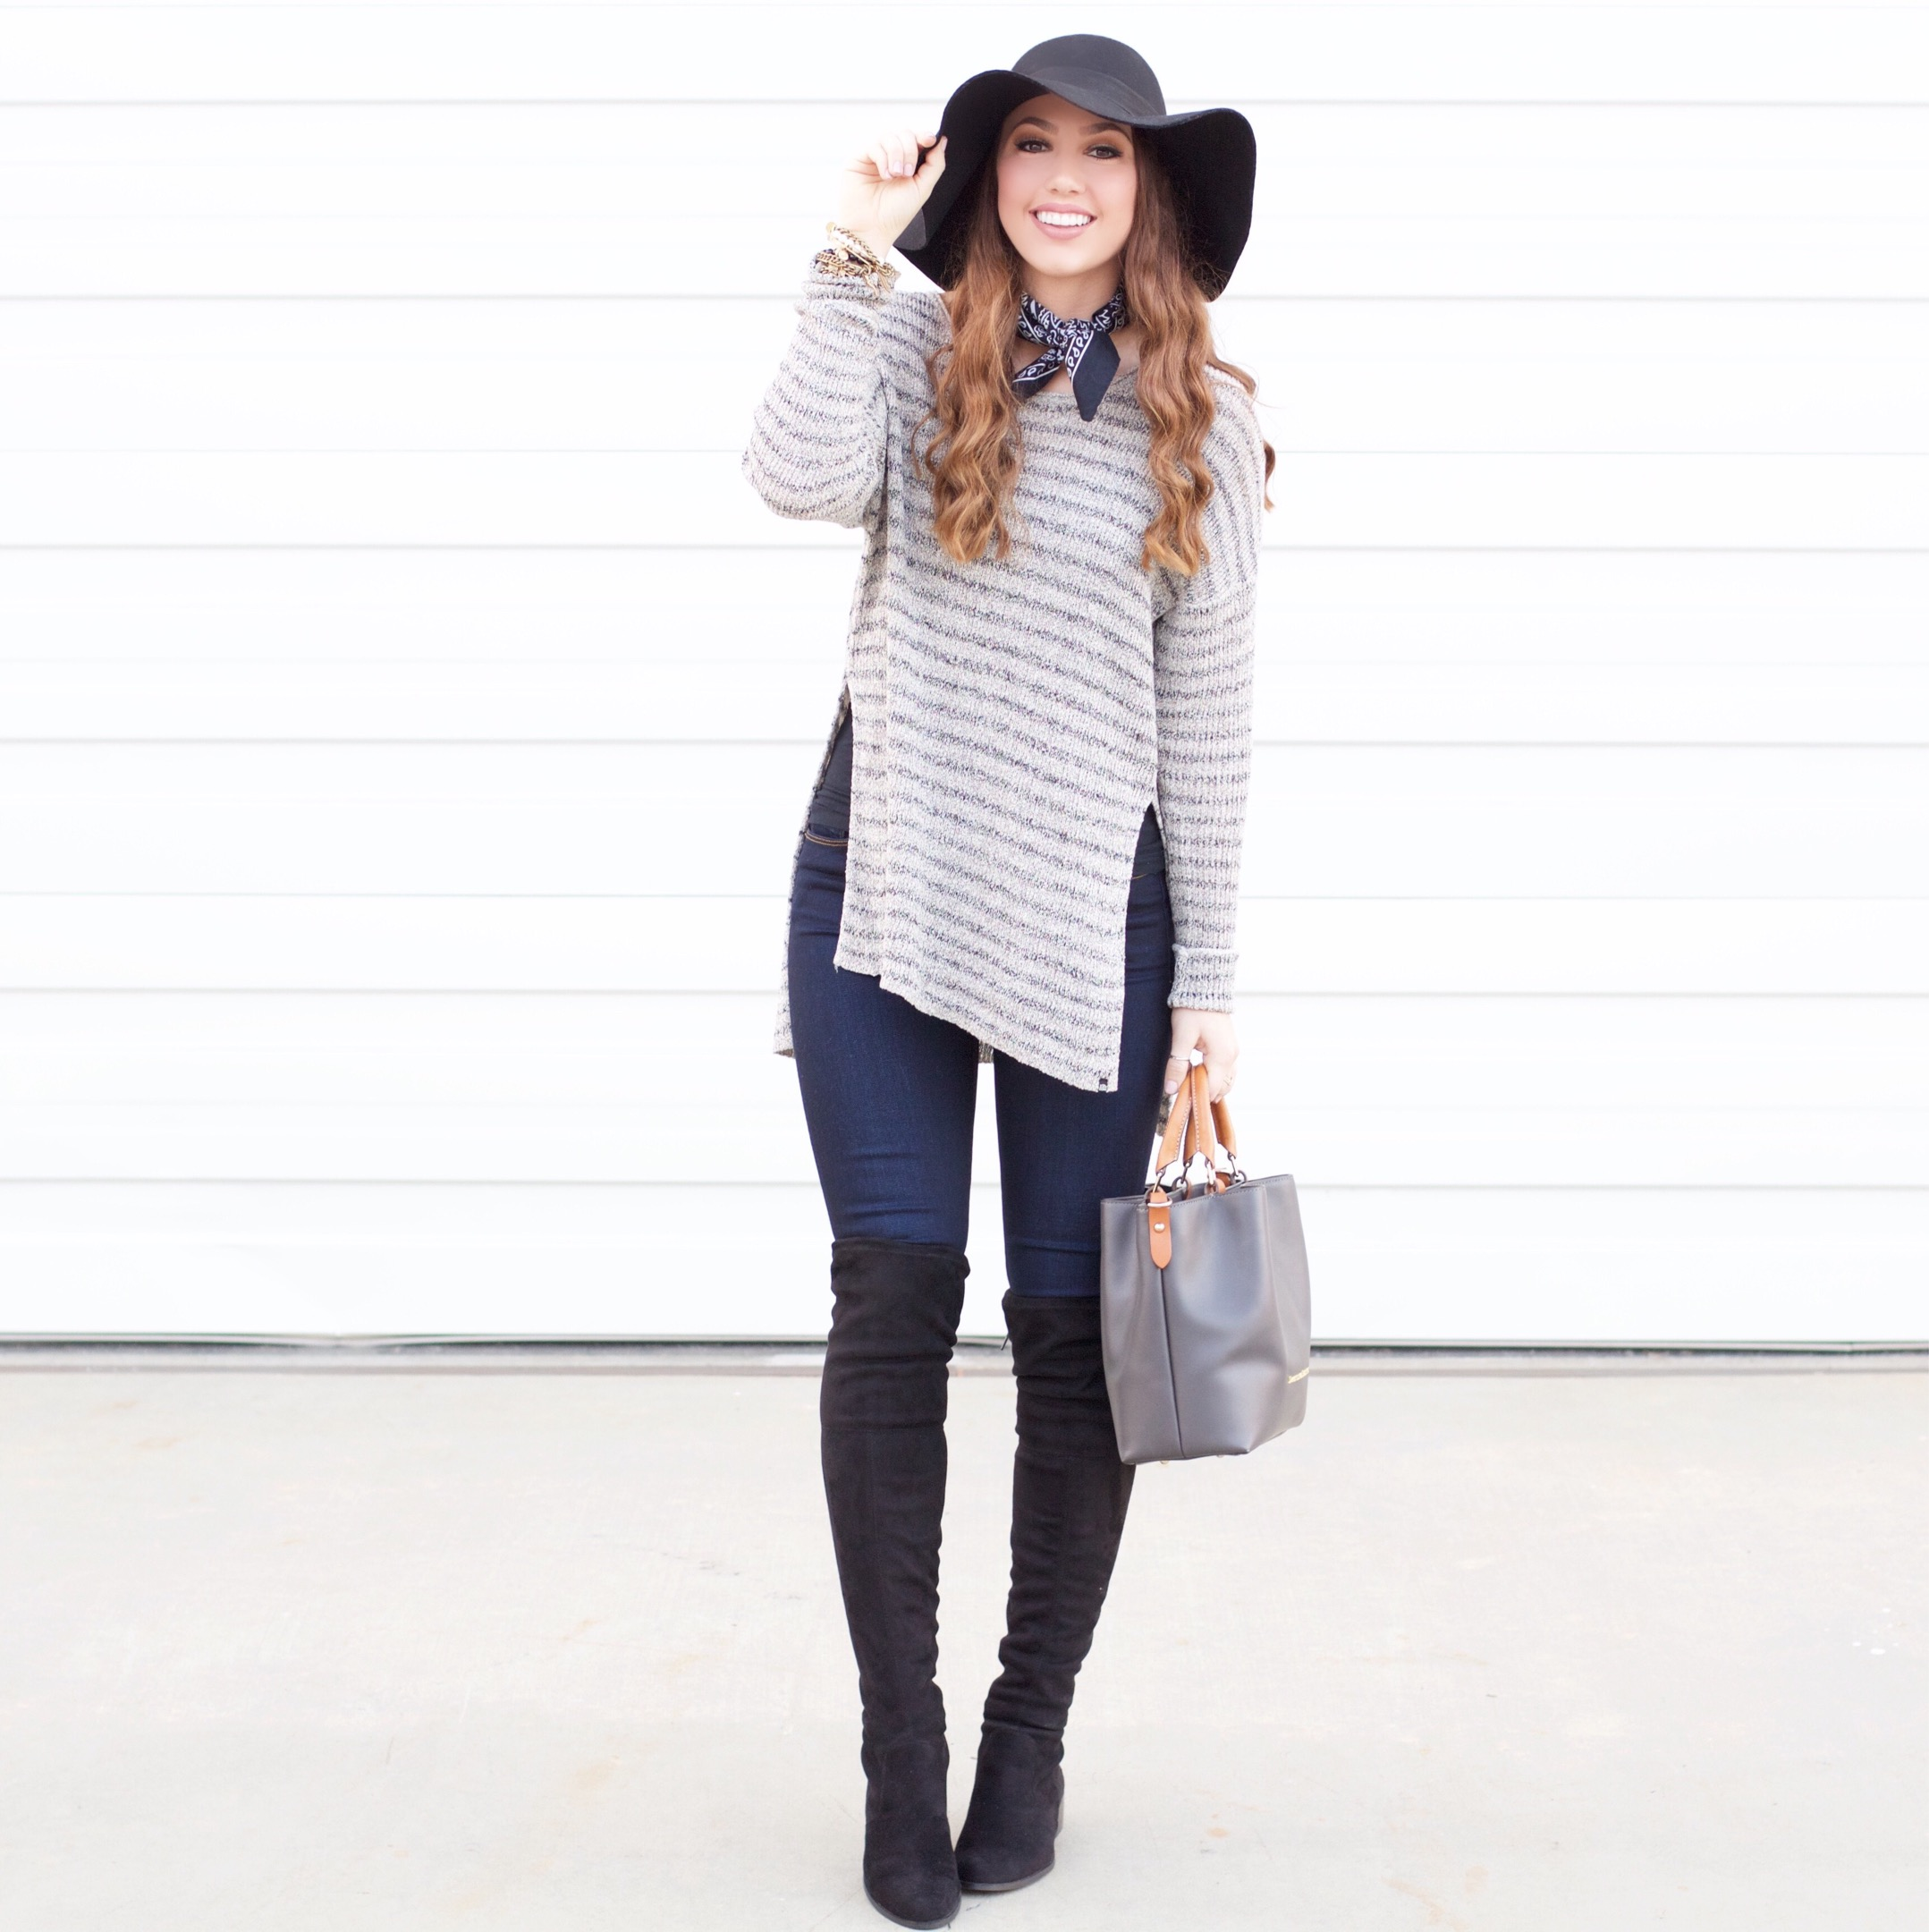 cute winter outfit w/ over the knee boots